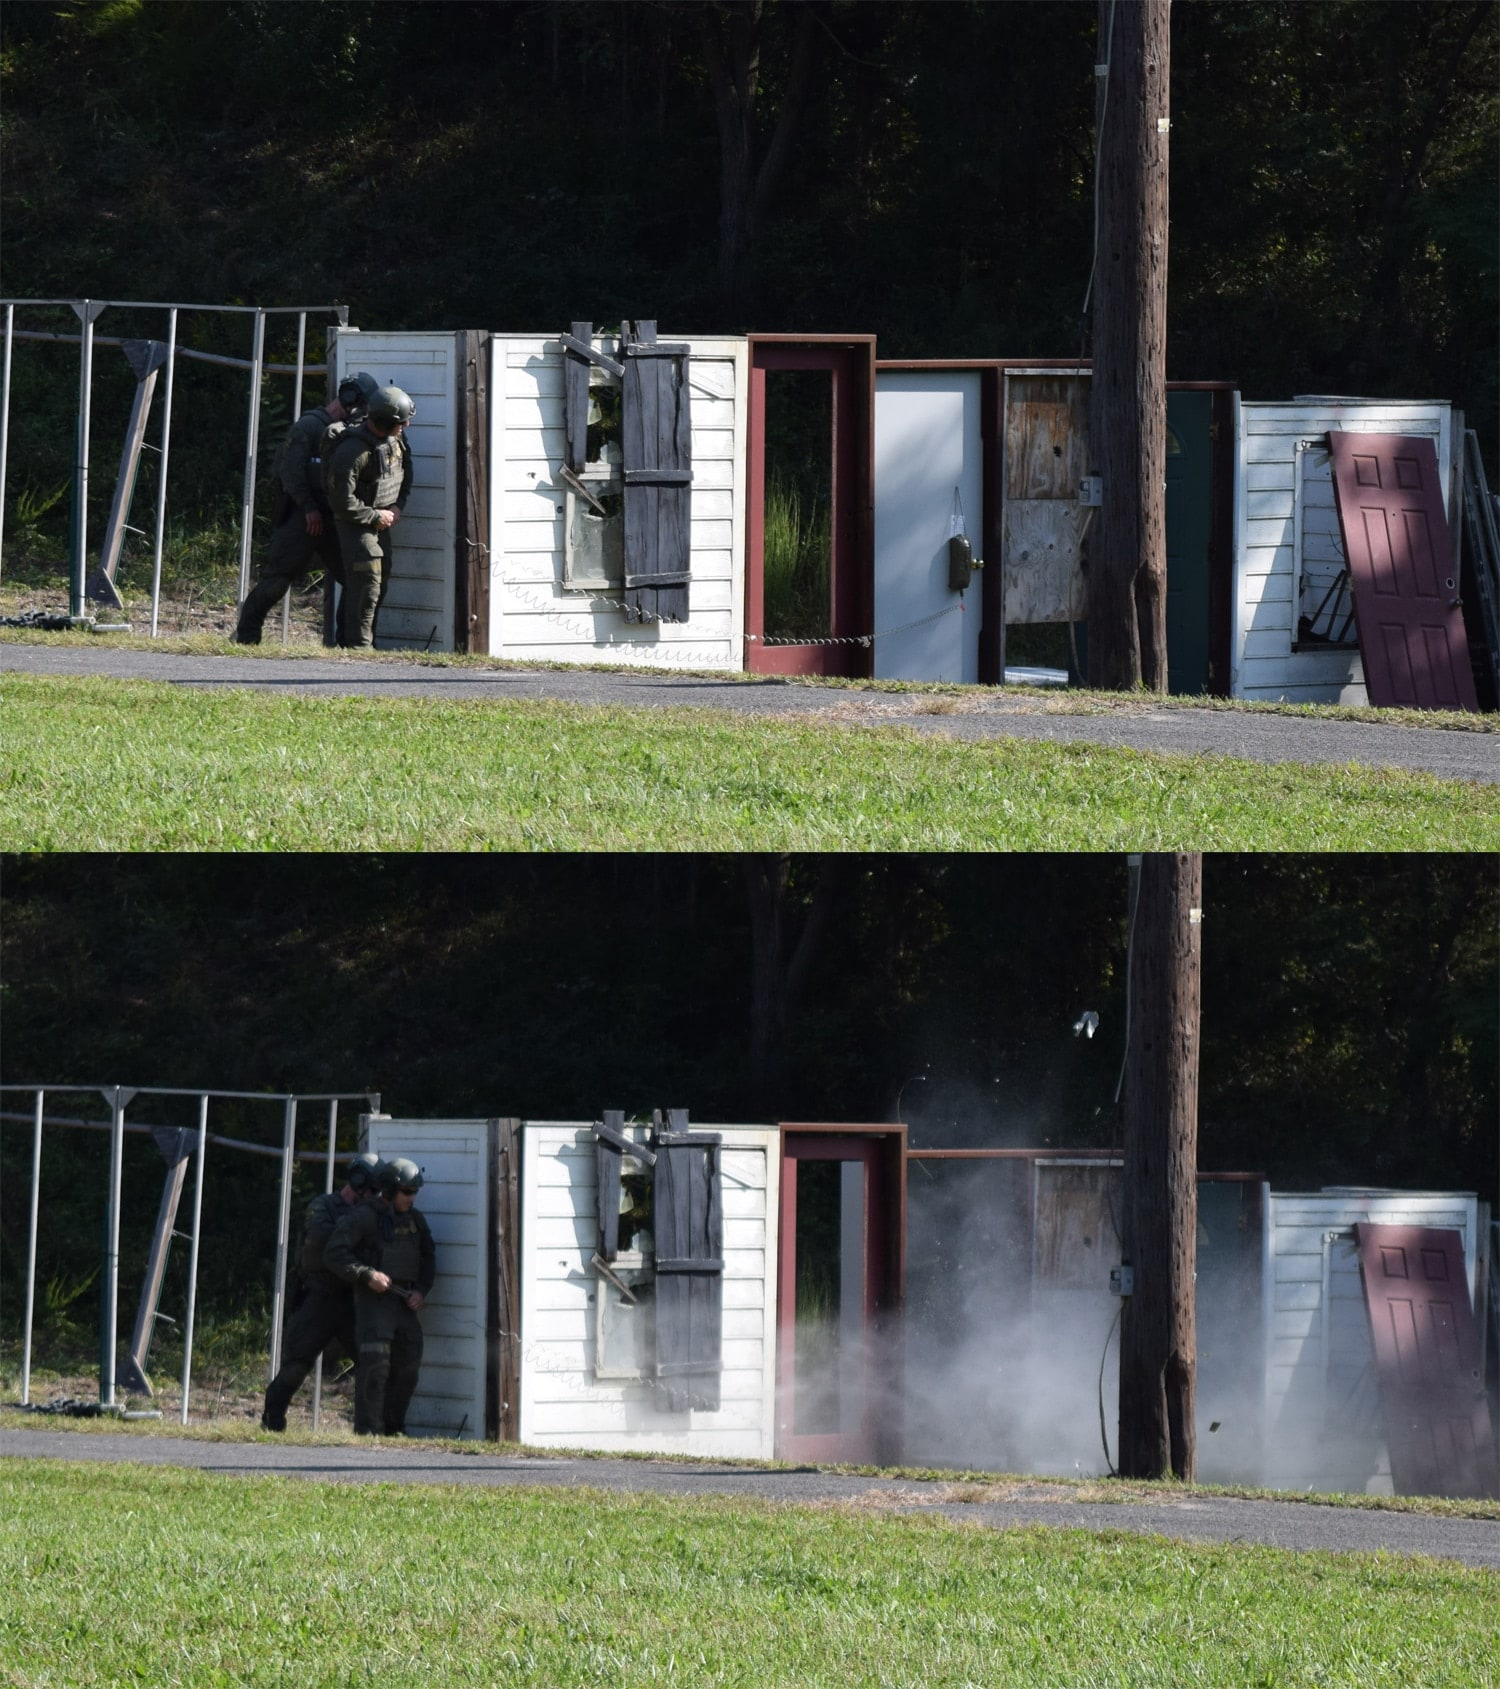 ATF SRT agents demonstrate how to breach a door with explosives. The explosive device is essentially detonation cord sandwiched between a water bottle and an IV bag. (Photo: Daniel Terrill/Guns.com)